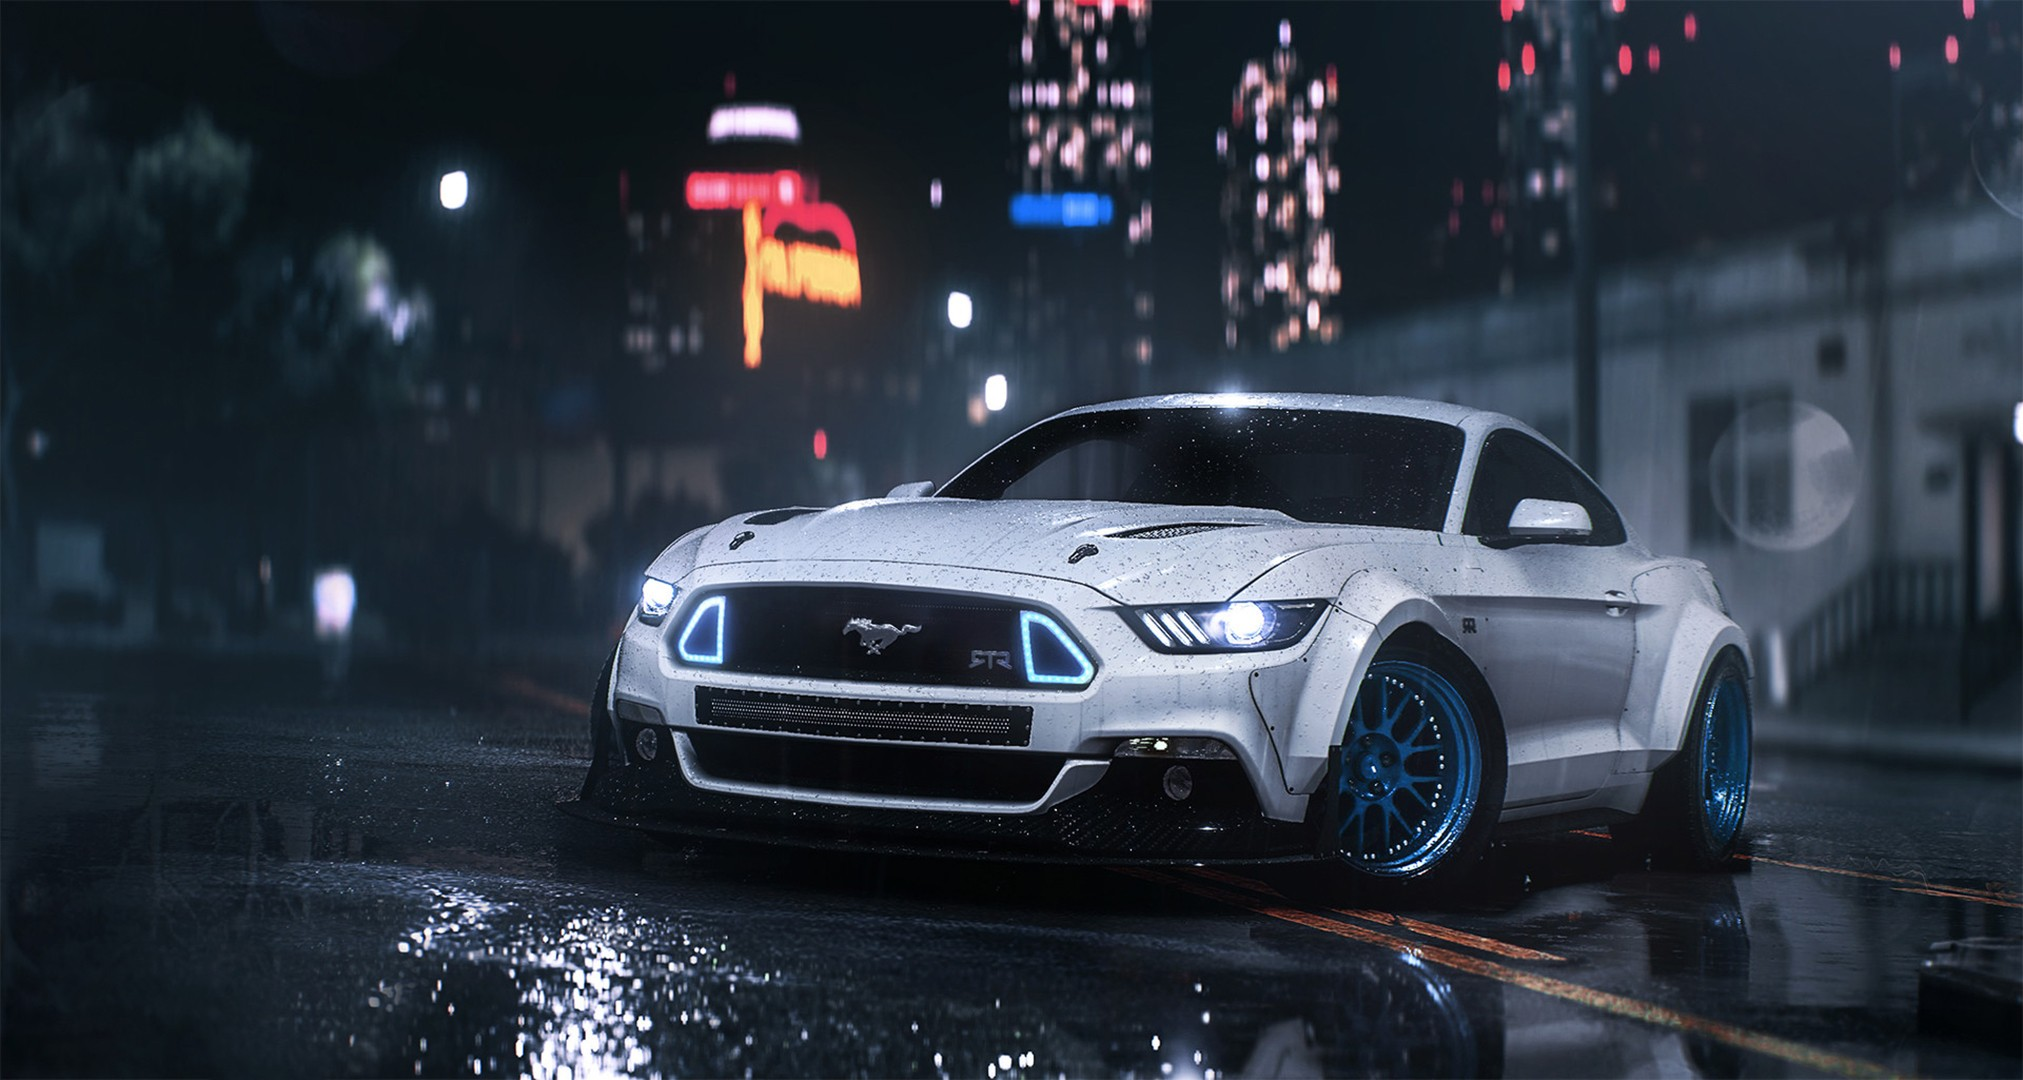 2048x1152 Need For Speed Mustang 2048x1152 Resolution Hd